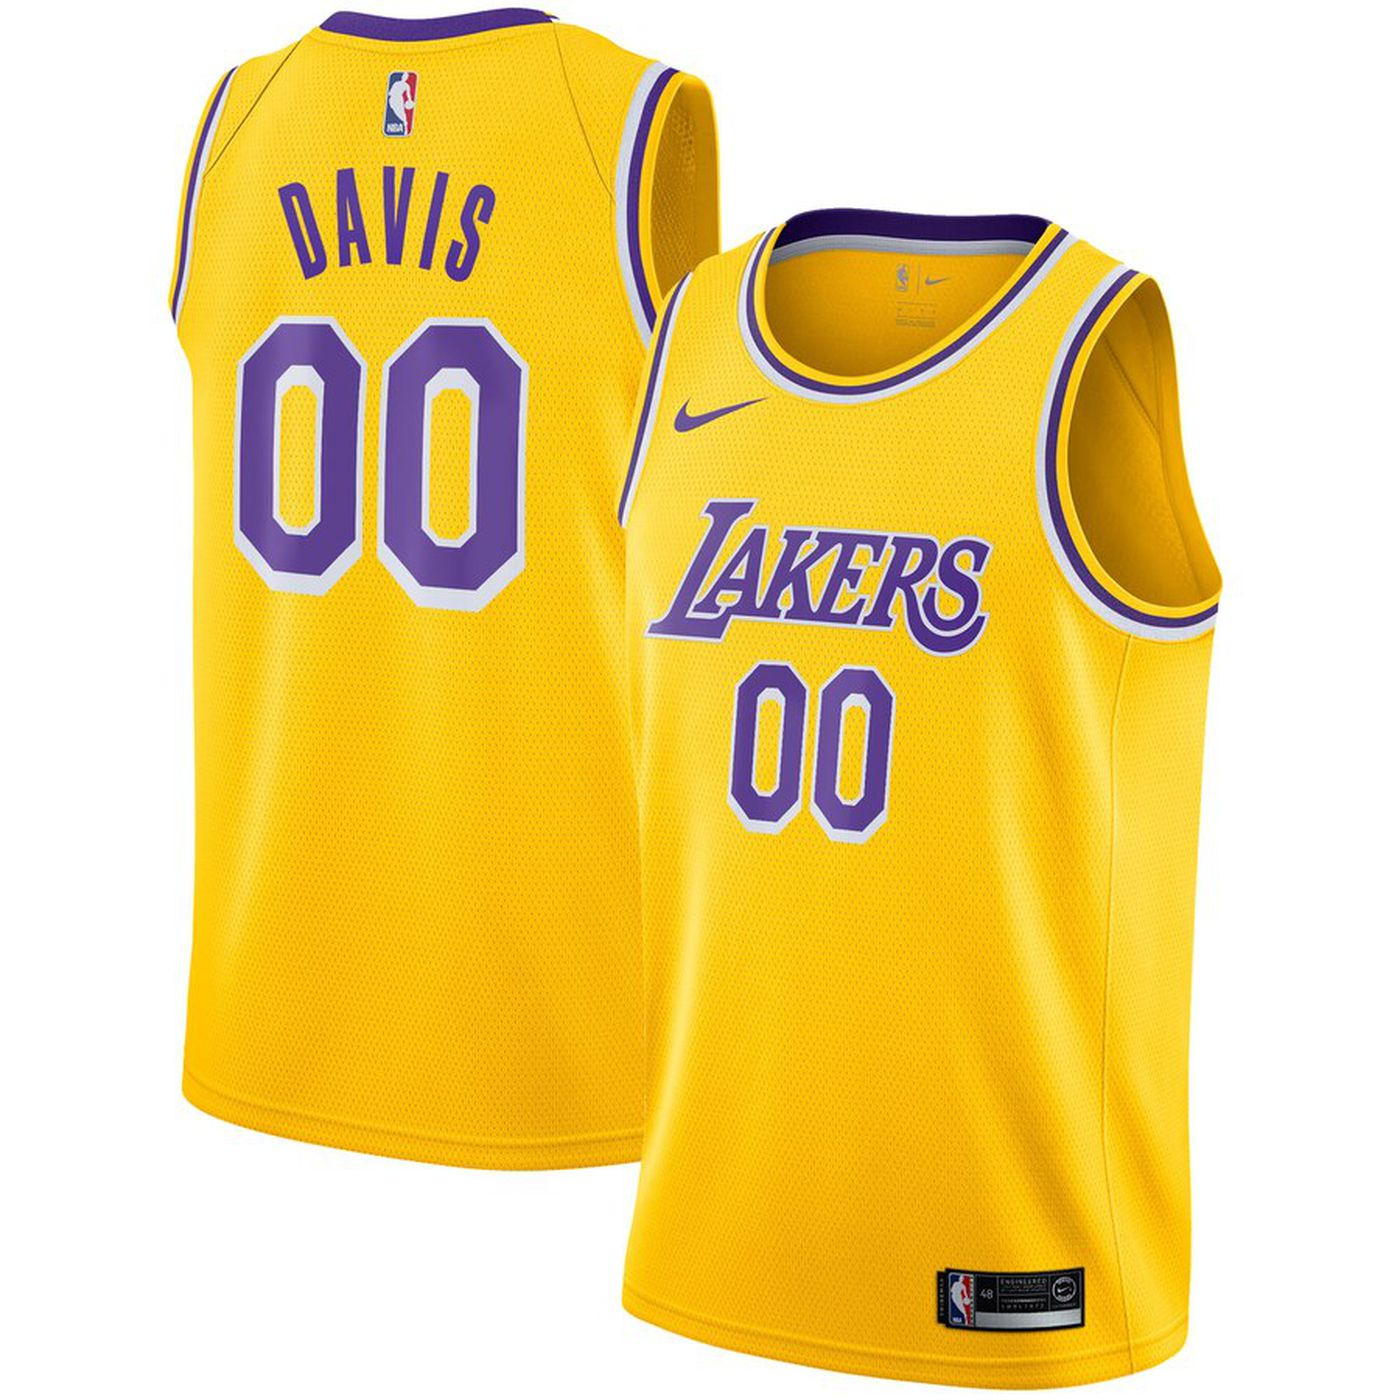 best website e5567 054f0 The first Anthony Davis Los Angeles Lakers jersey has ...